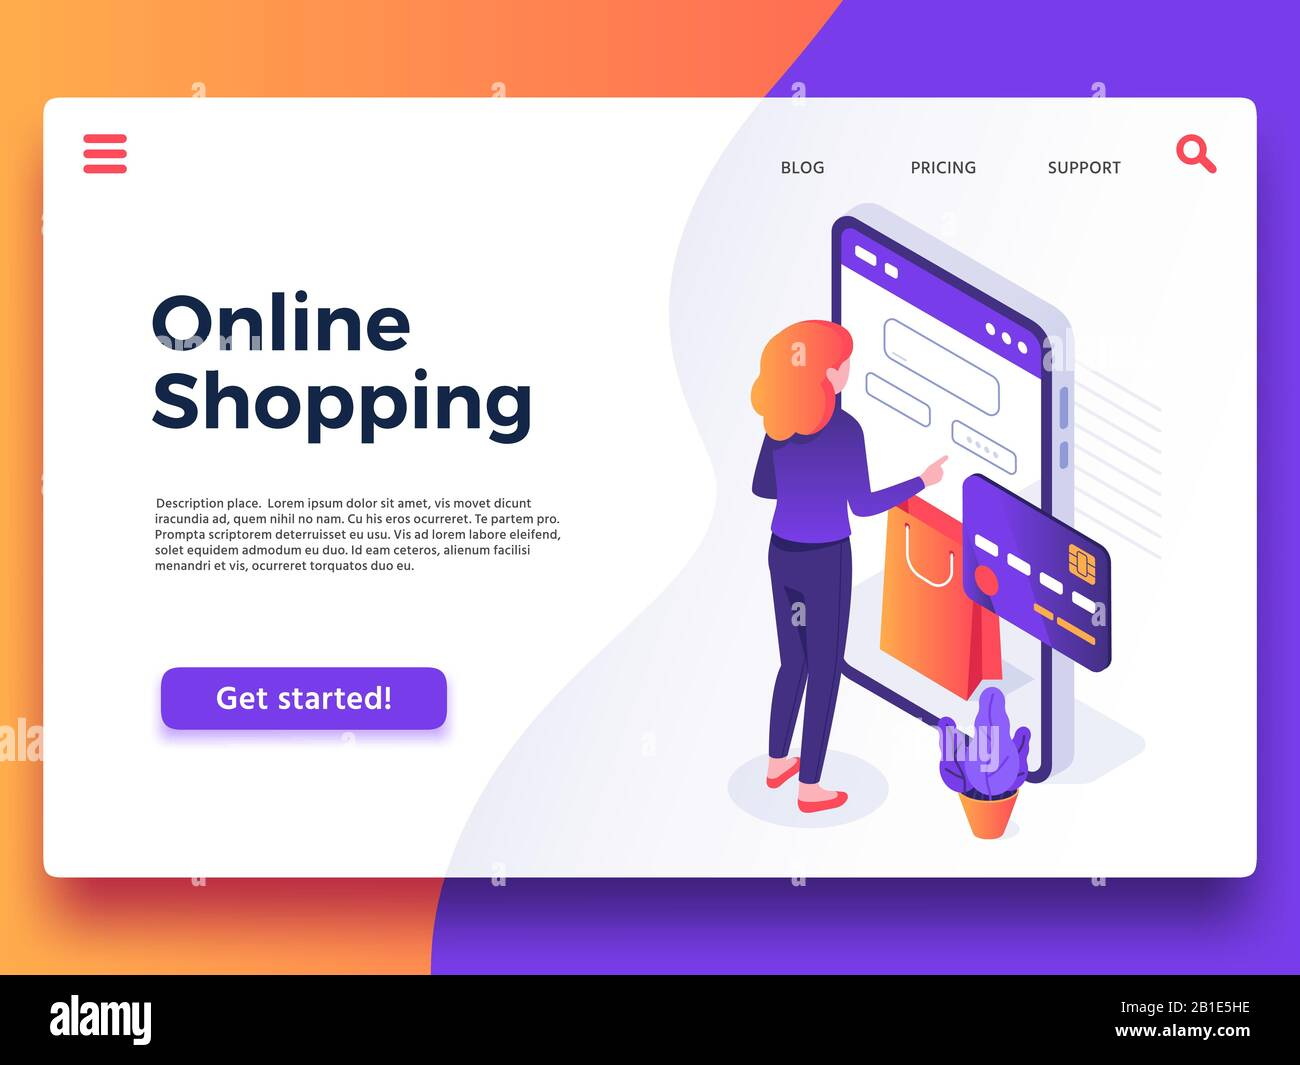 Online shopping landing page. Internet shop, mobile store app and payments  billing vector illustration Stock Vector Image & Art - Alamy